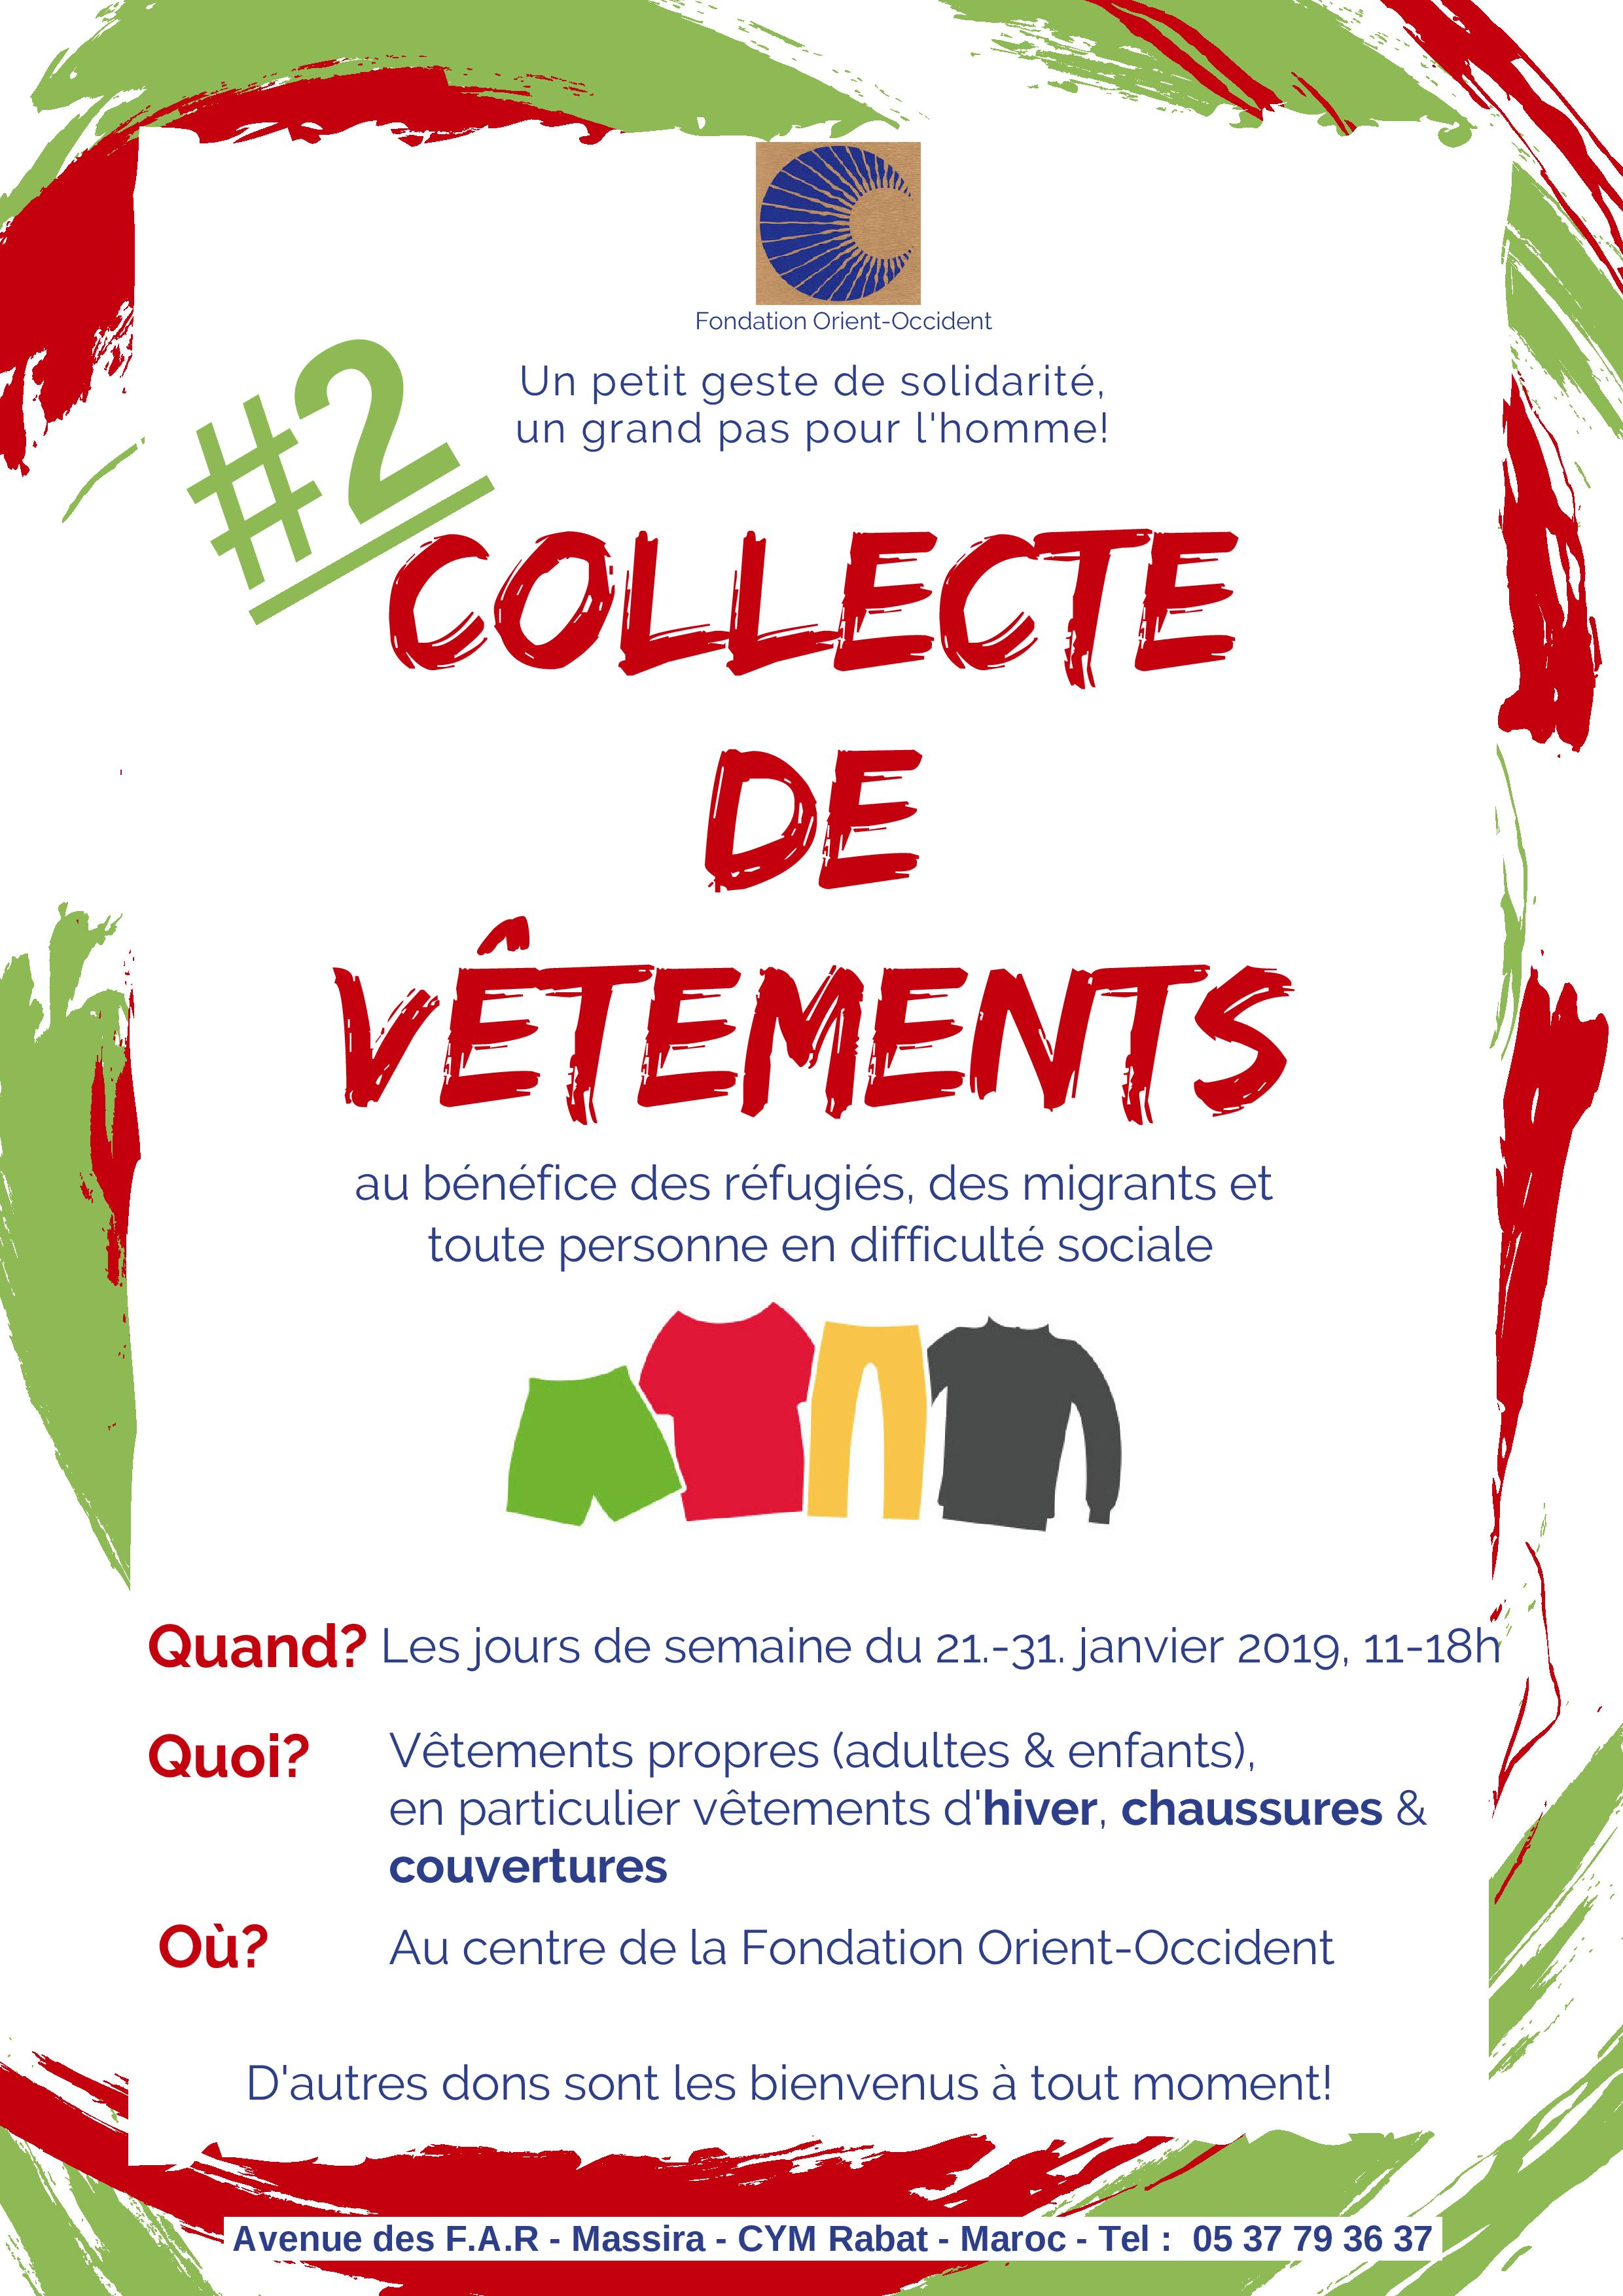 Second collection of clothes at the Fondation Orient-Occident of Rabat